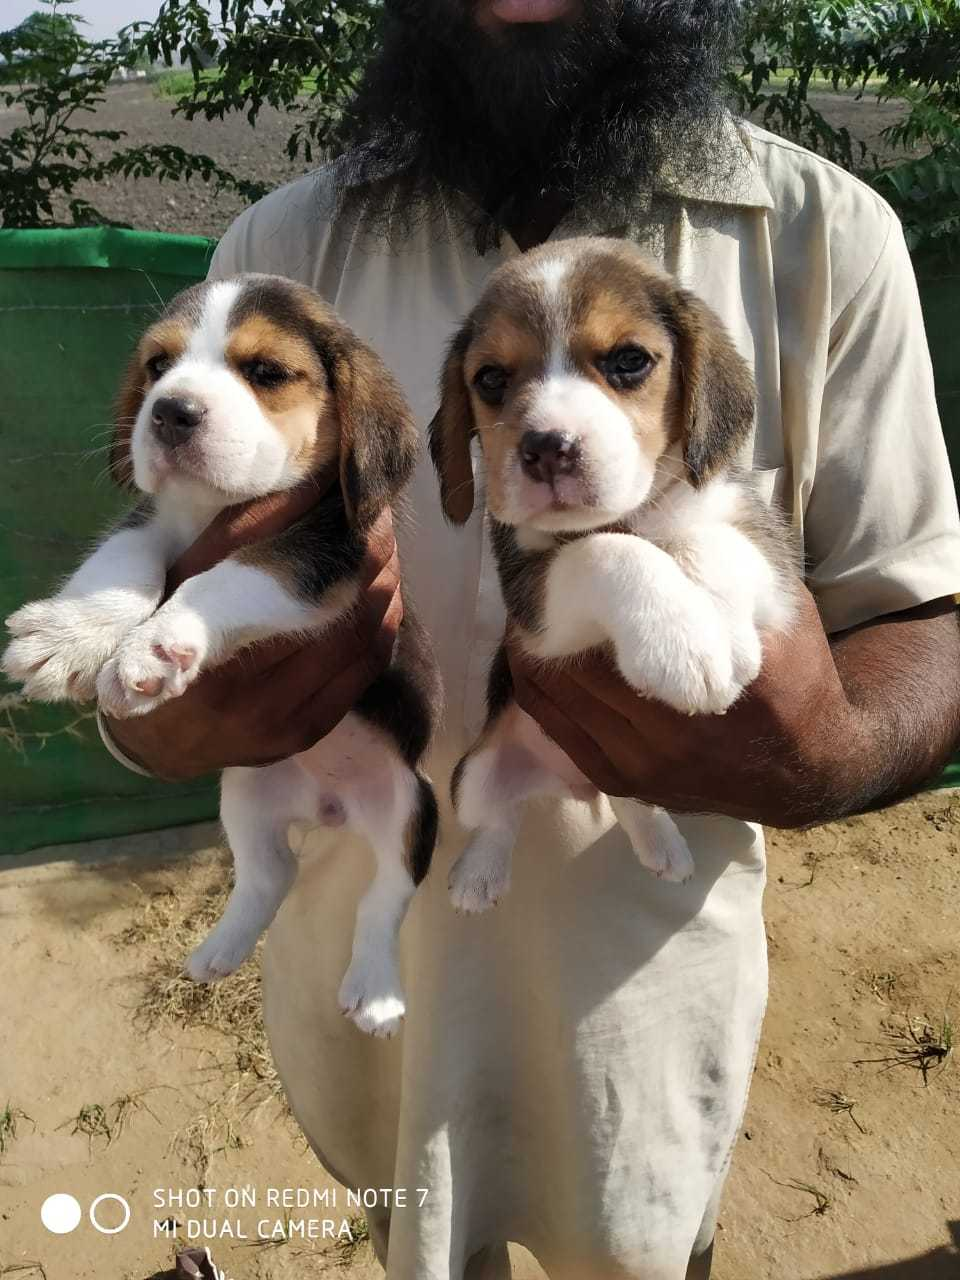 Top Pet Shops For Dog in Birati - Best Pet Store - Justdial